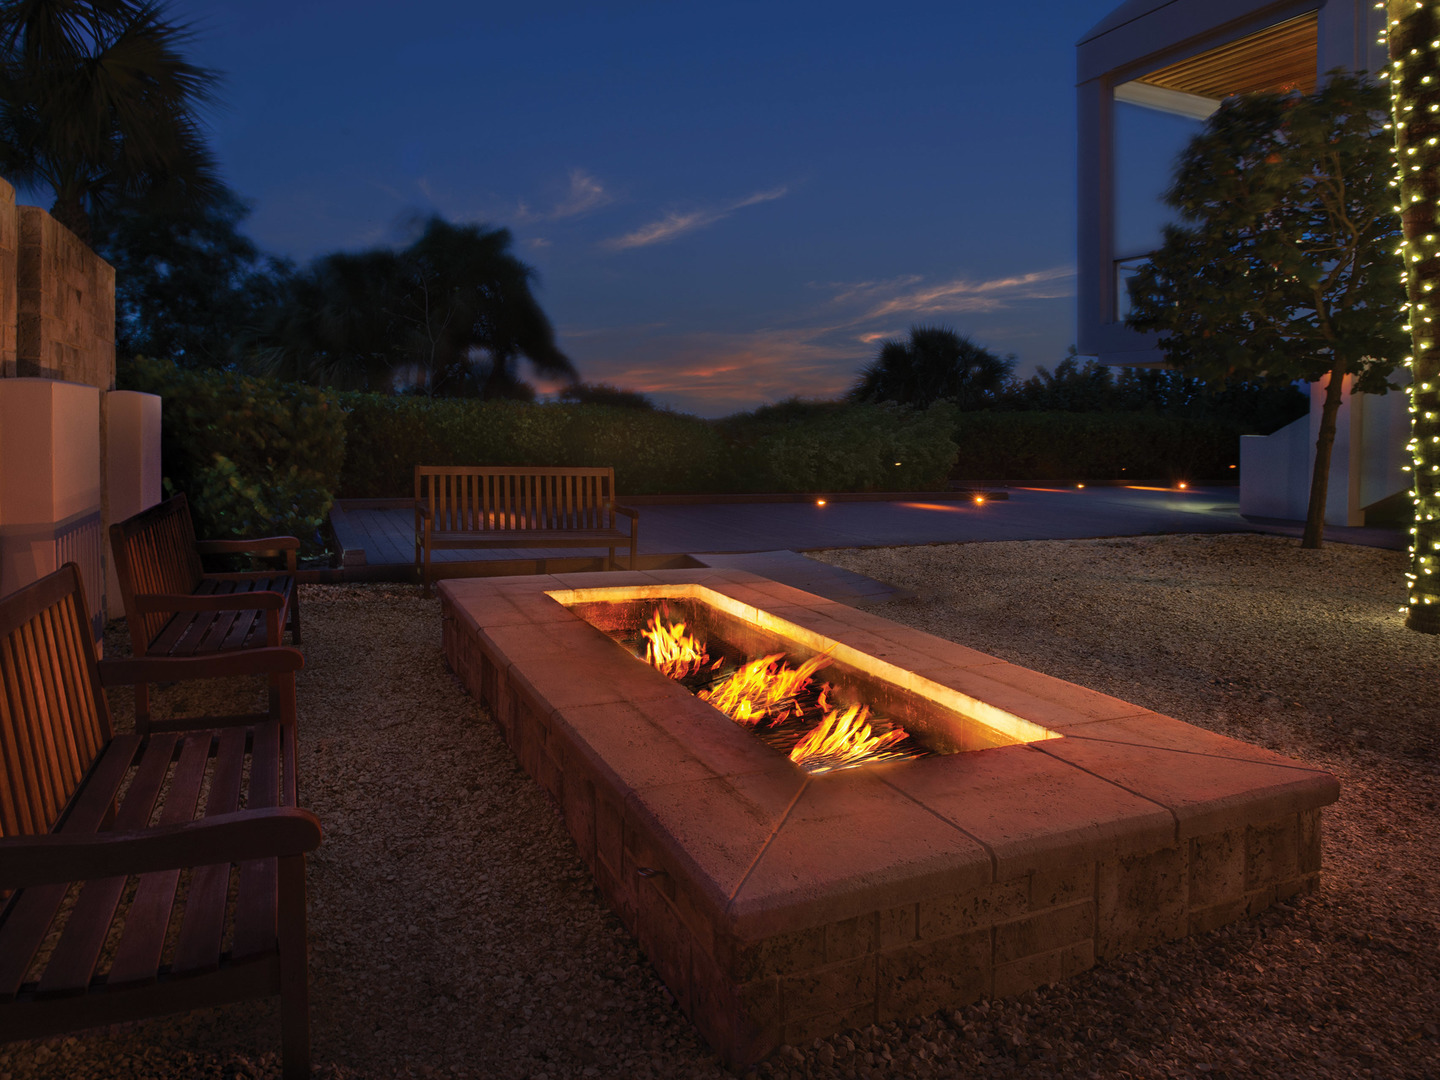 Marriott's Crystal Shores Fire Pit. Marriott's Crystal Shores is located in Marco Island, Florida United States.